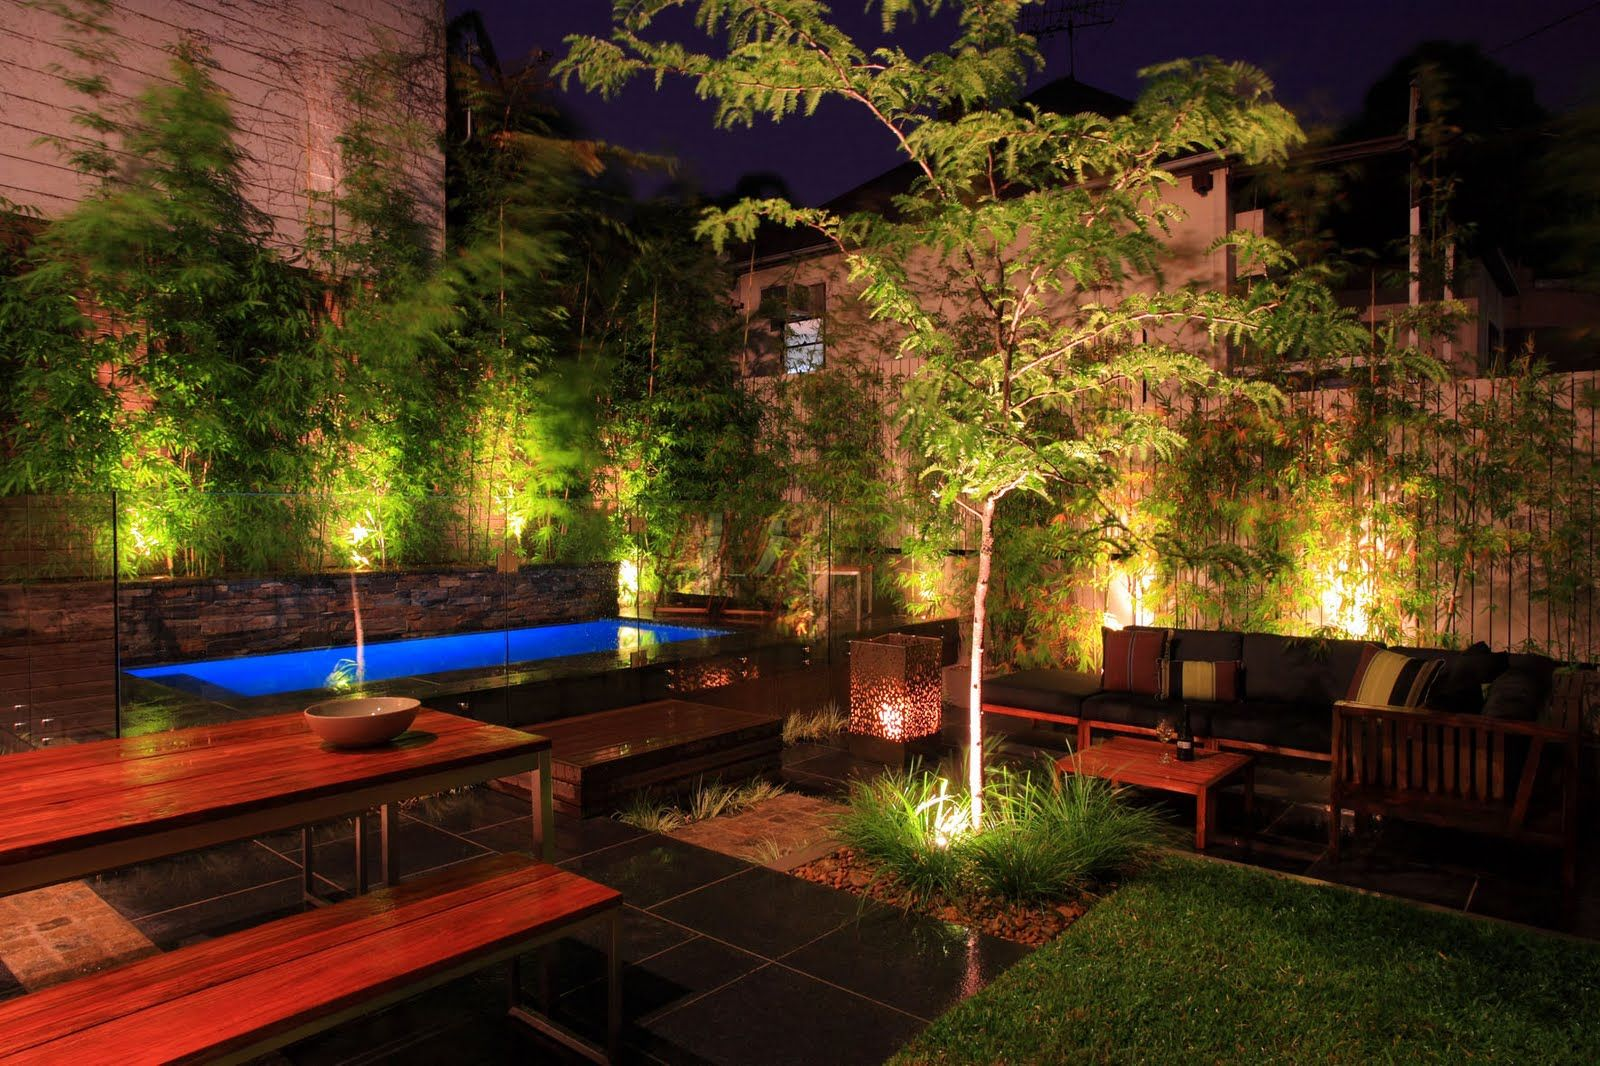 A Beautifully Garden Area New Sensation In Garden Area With